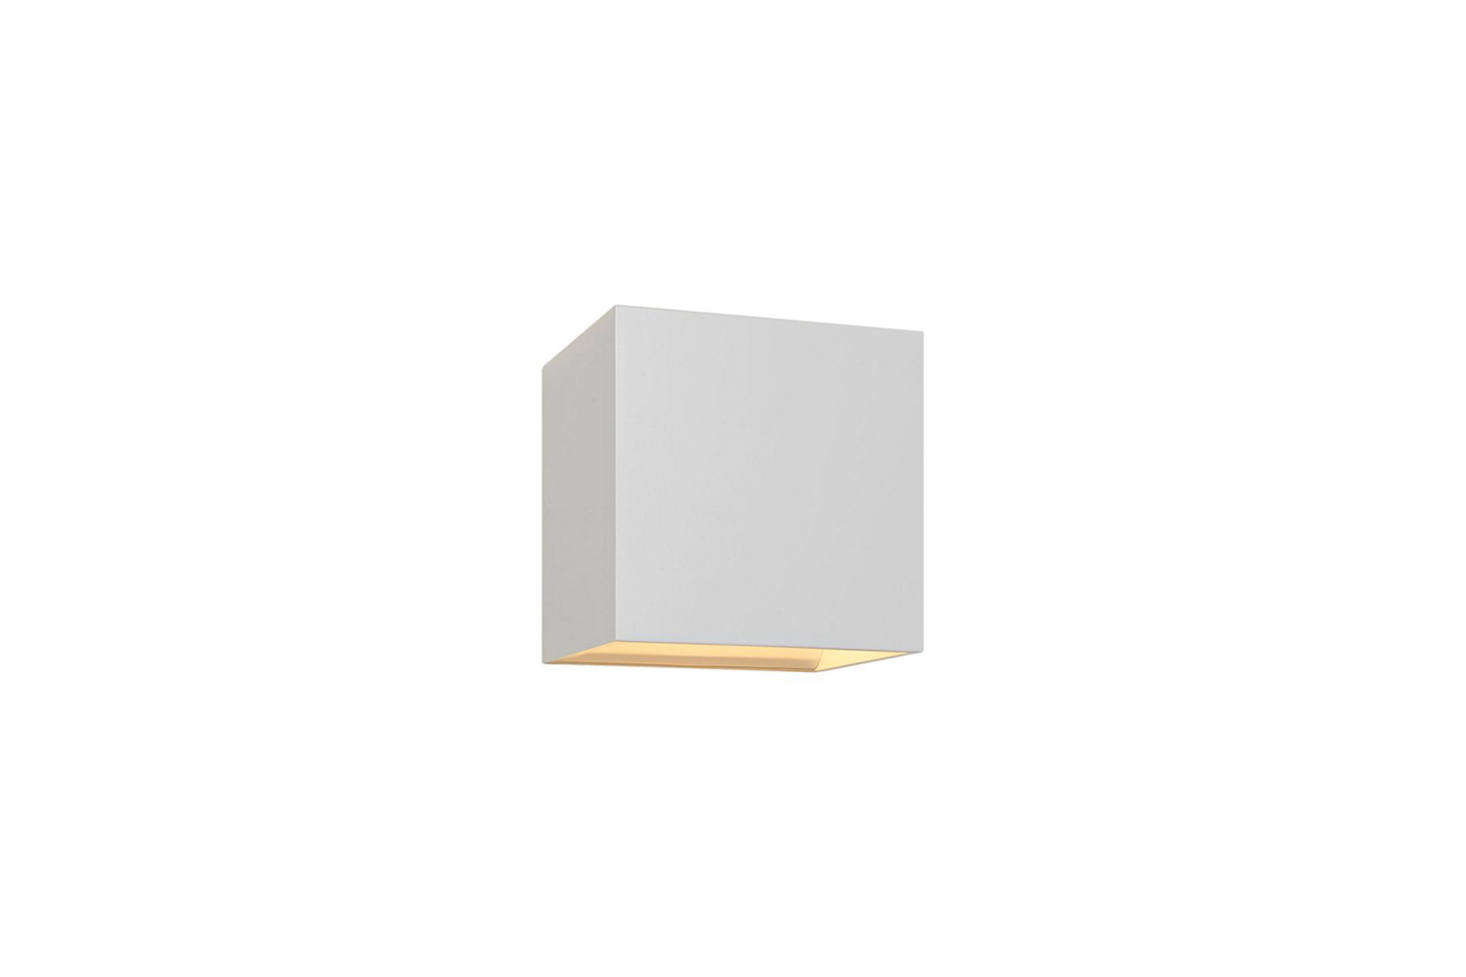 The Bruck QB White LED Wall Sconce has a white-painted aluminum construction; $215.63 at Lamps Plus.